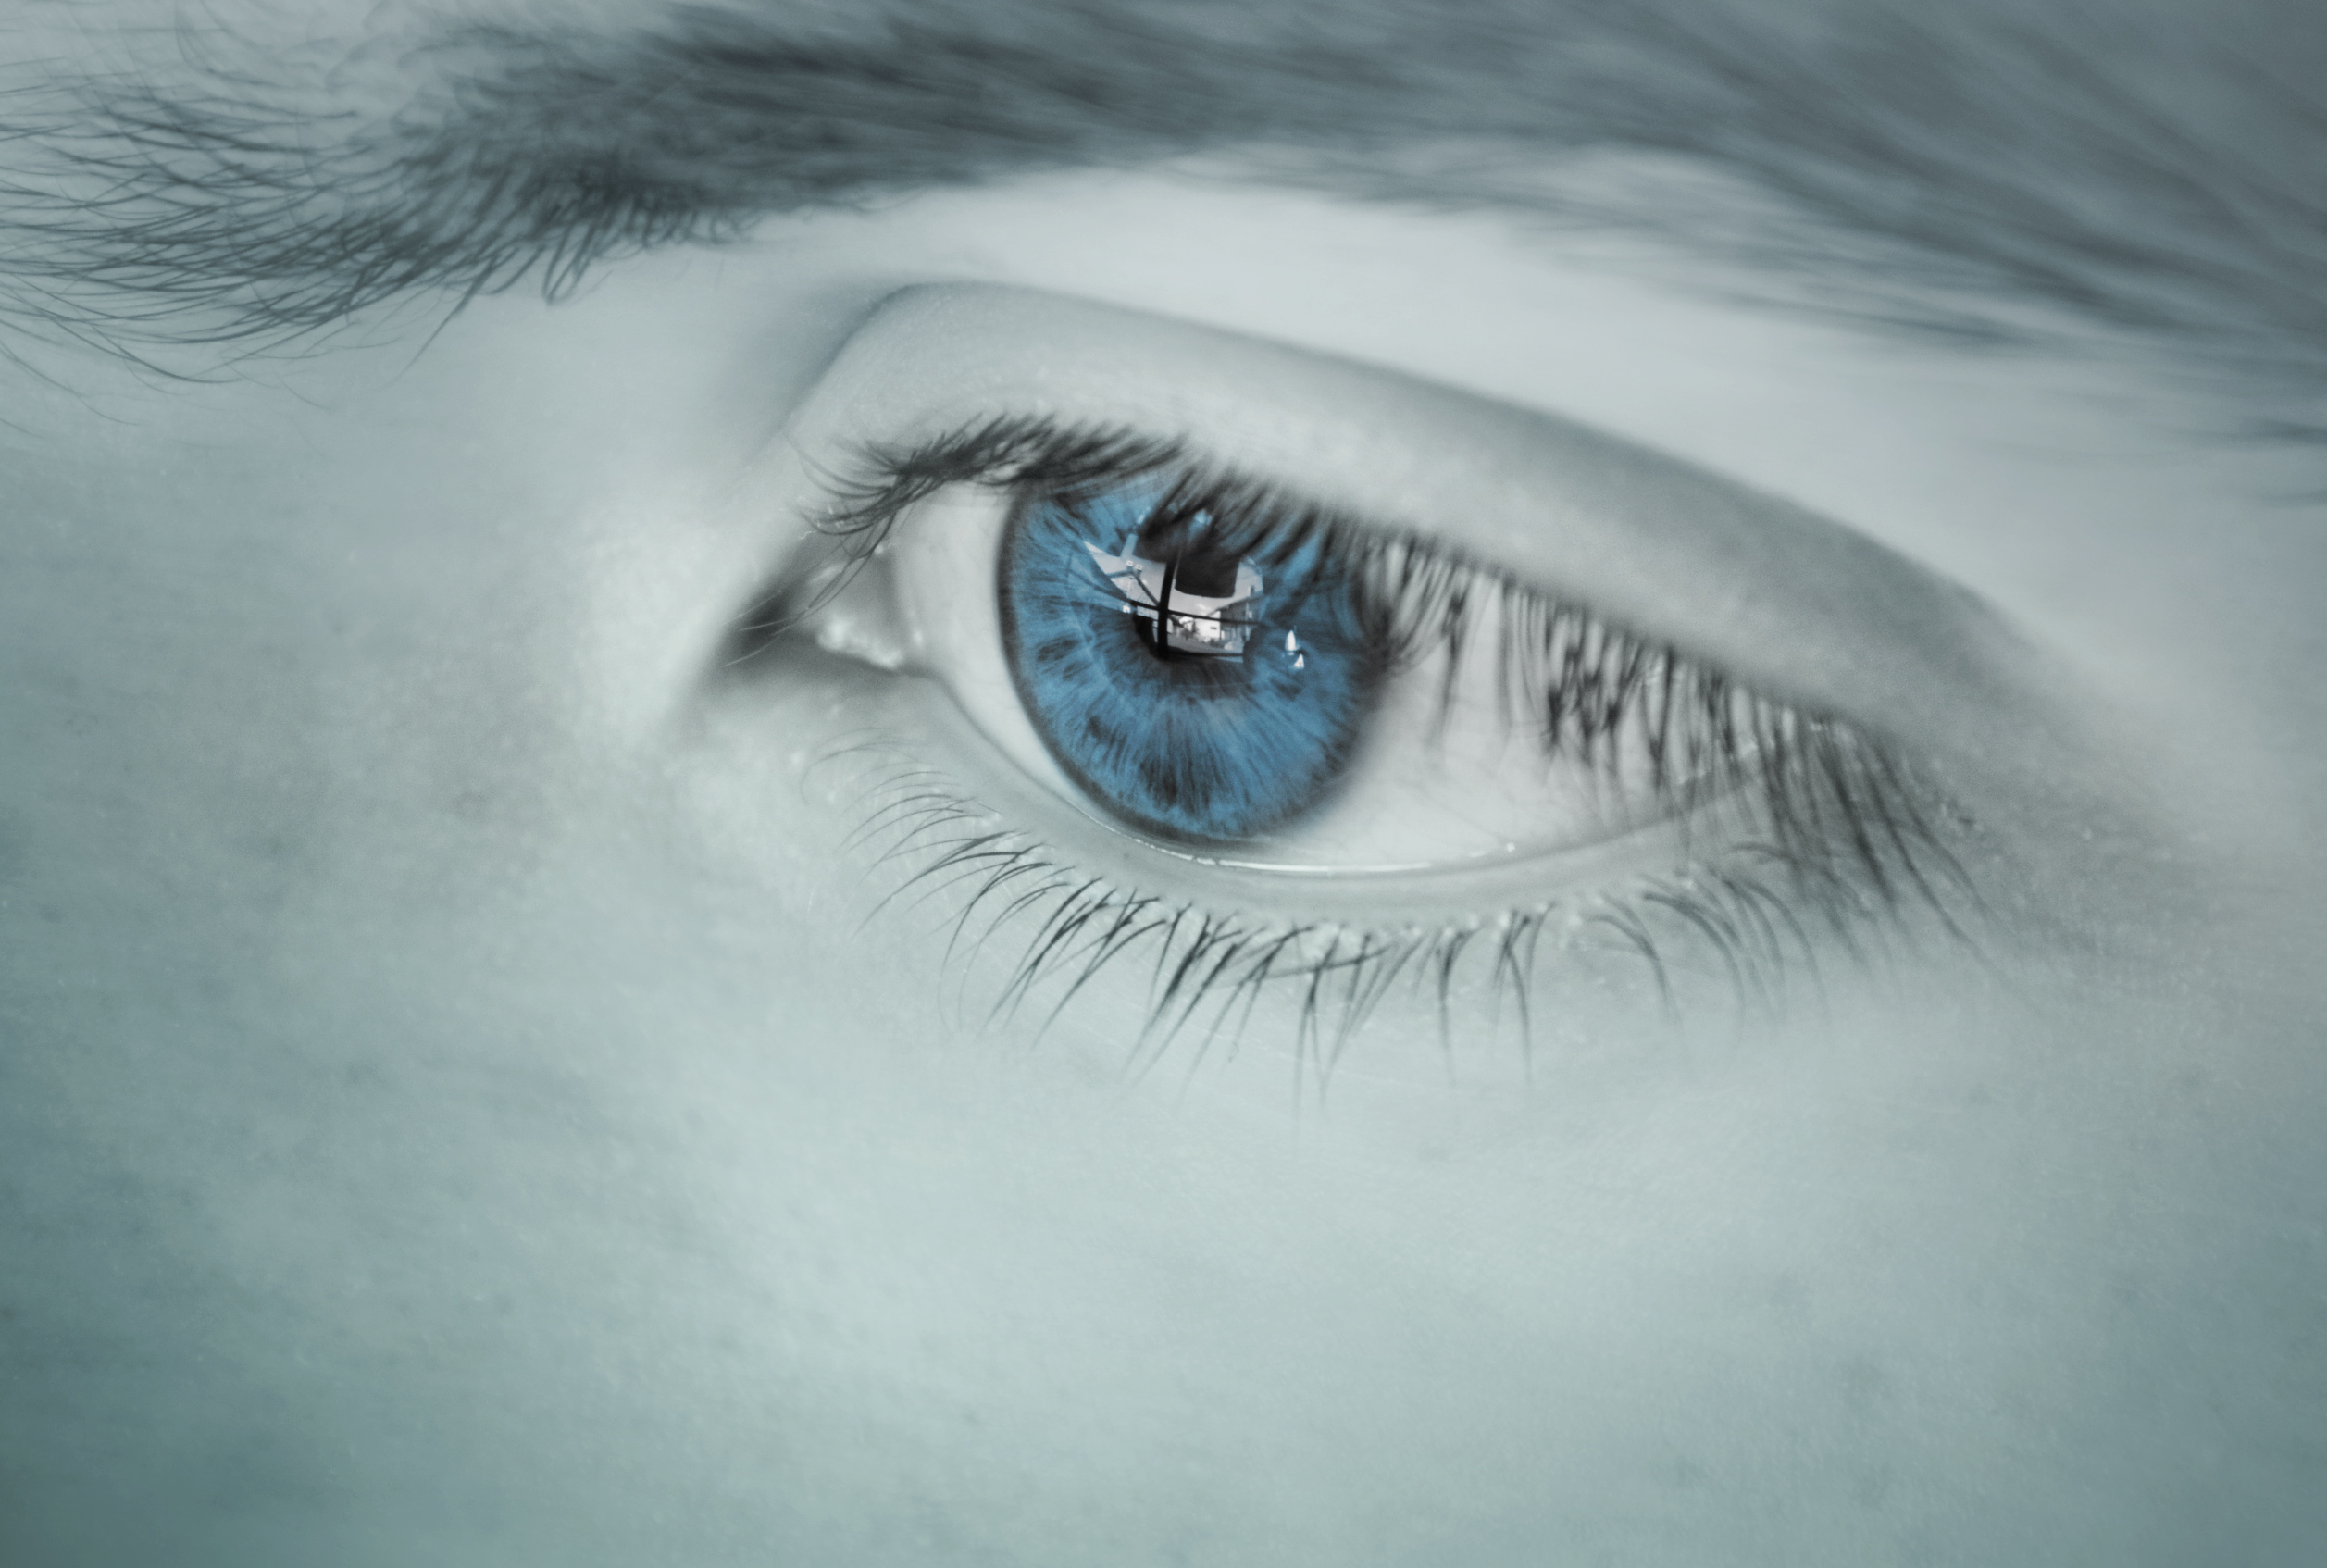 Wallpaper Sad Girl Love Close Up Of Human Eye 183 Free Stock Photo